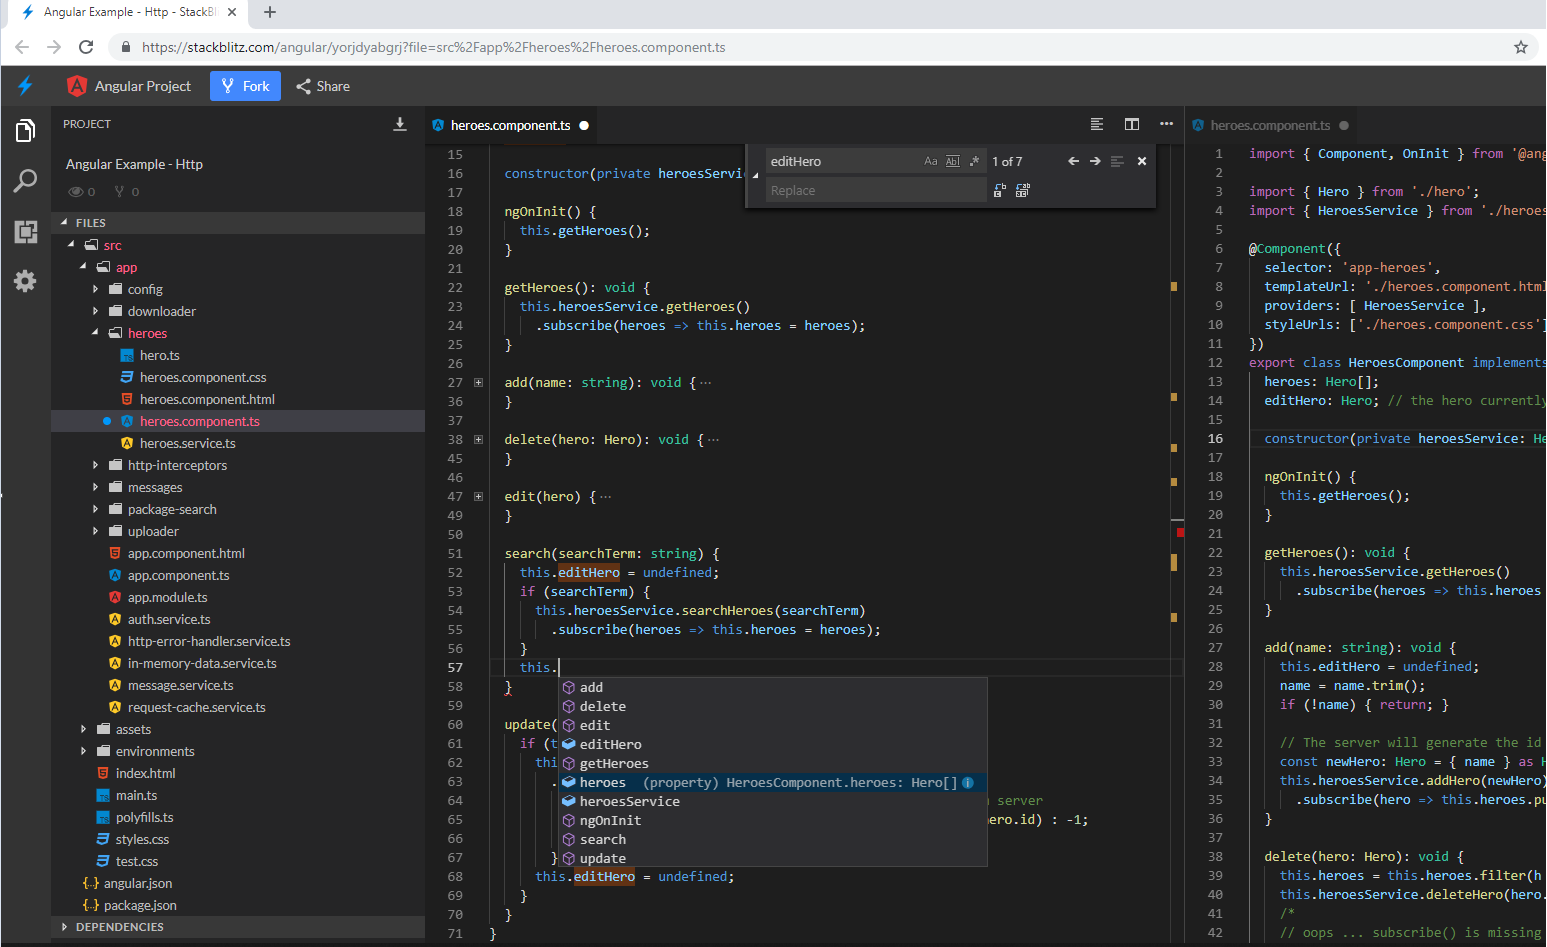 StackBlitz, the Online IDE for Web Applications - Brintia